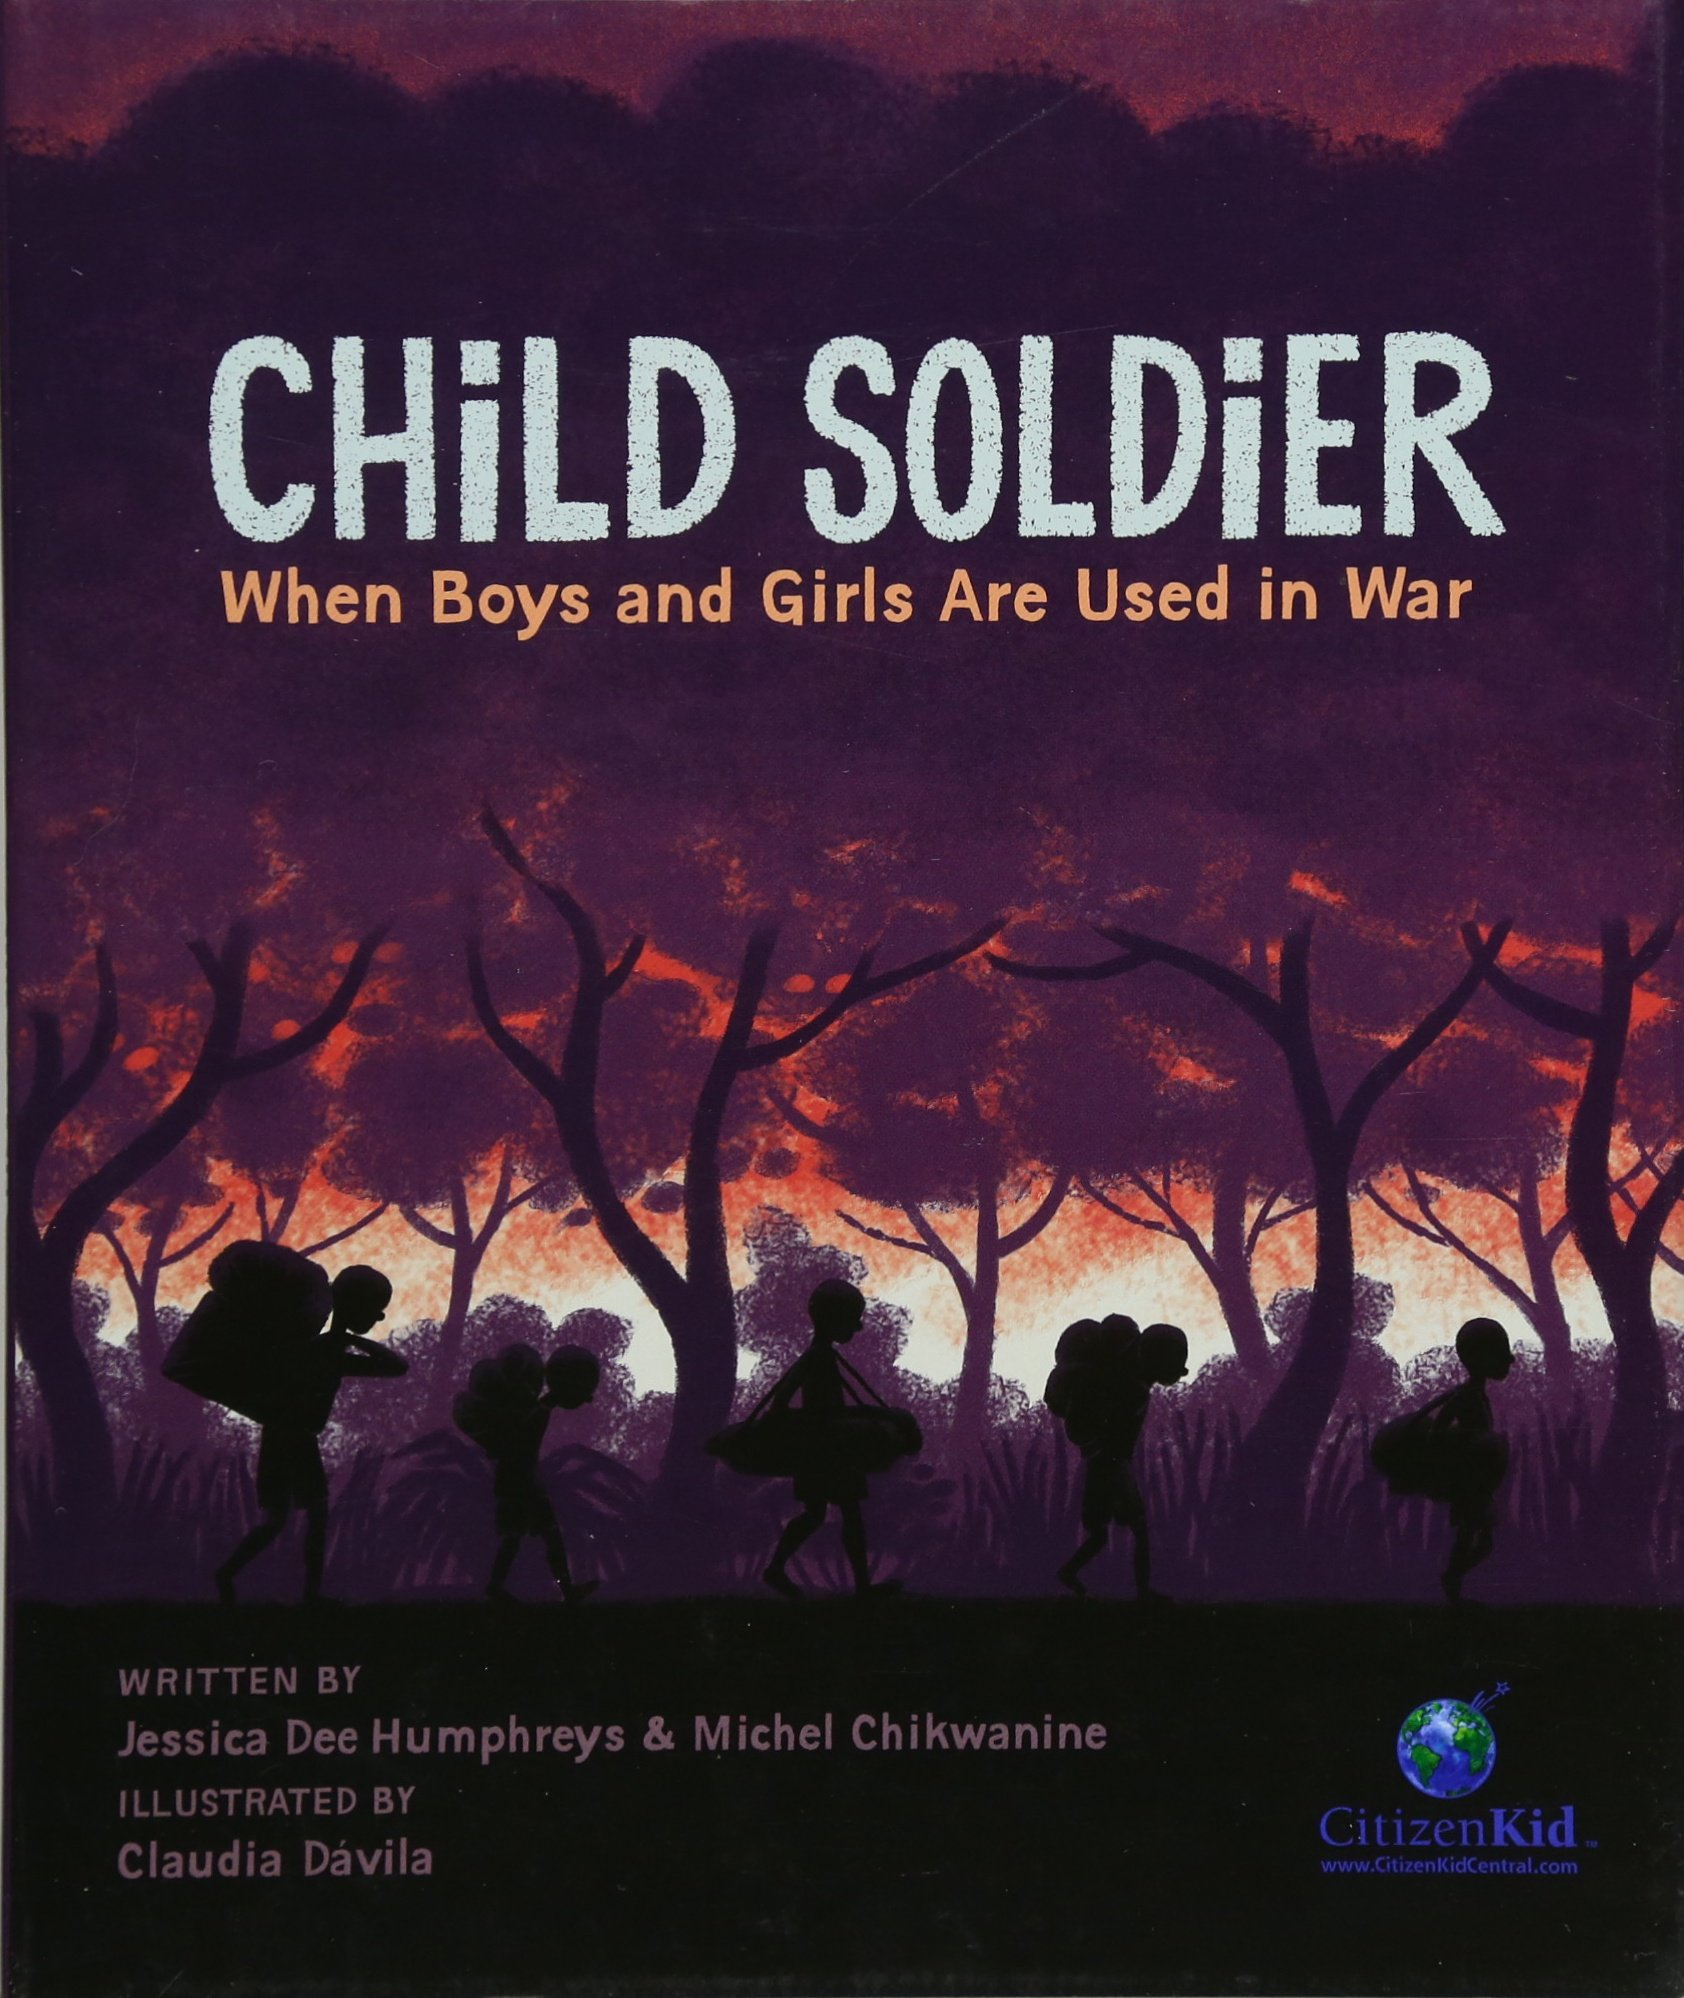 Child Soldier: When Boys and Girls Are Used in War (CitizenKid) pdf